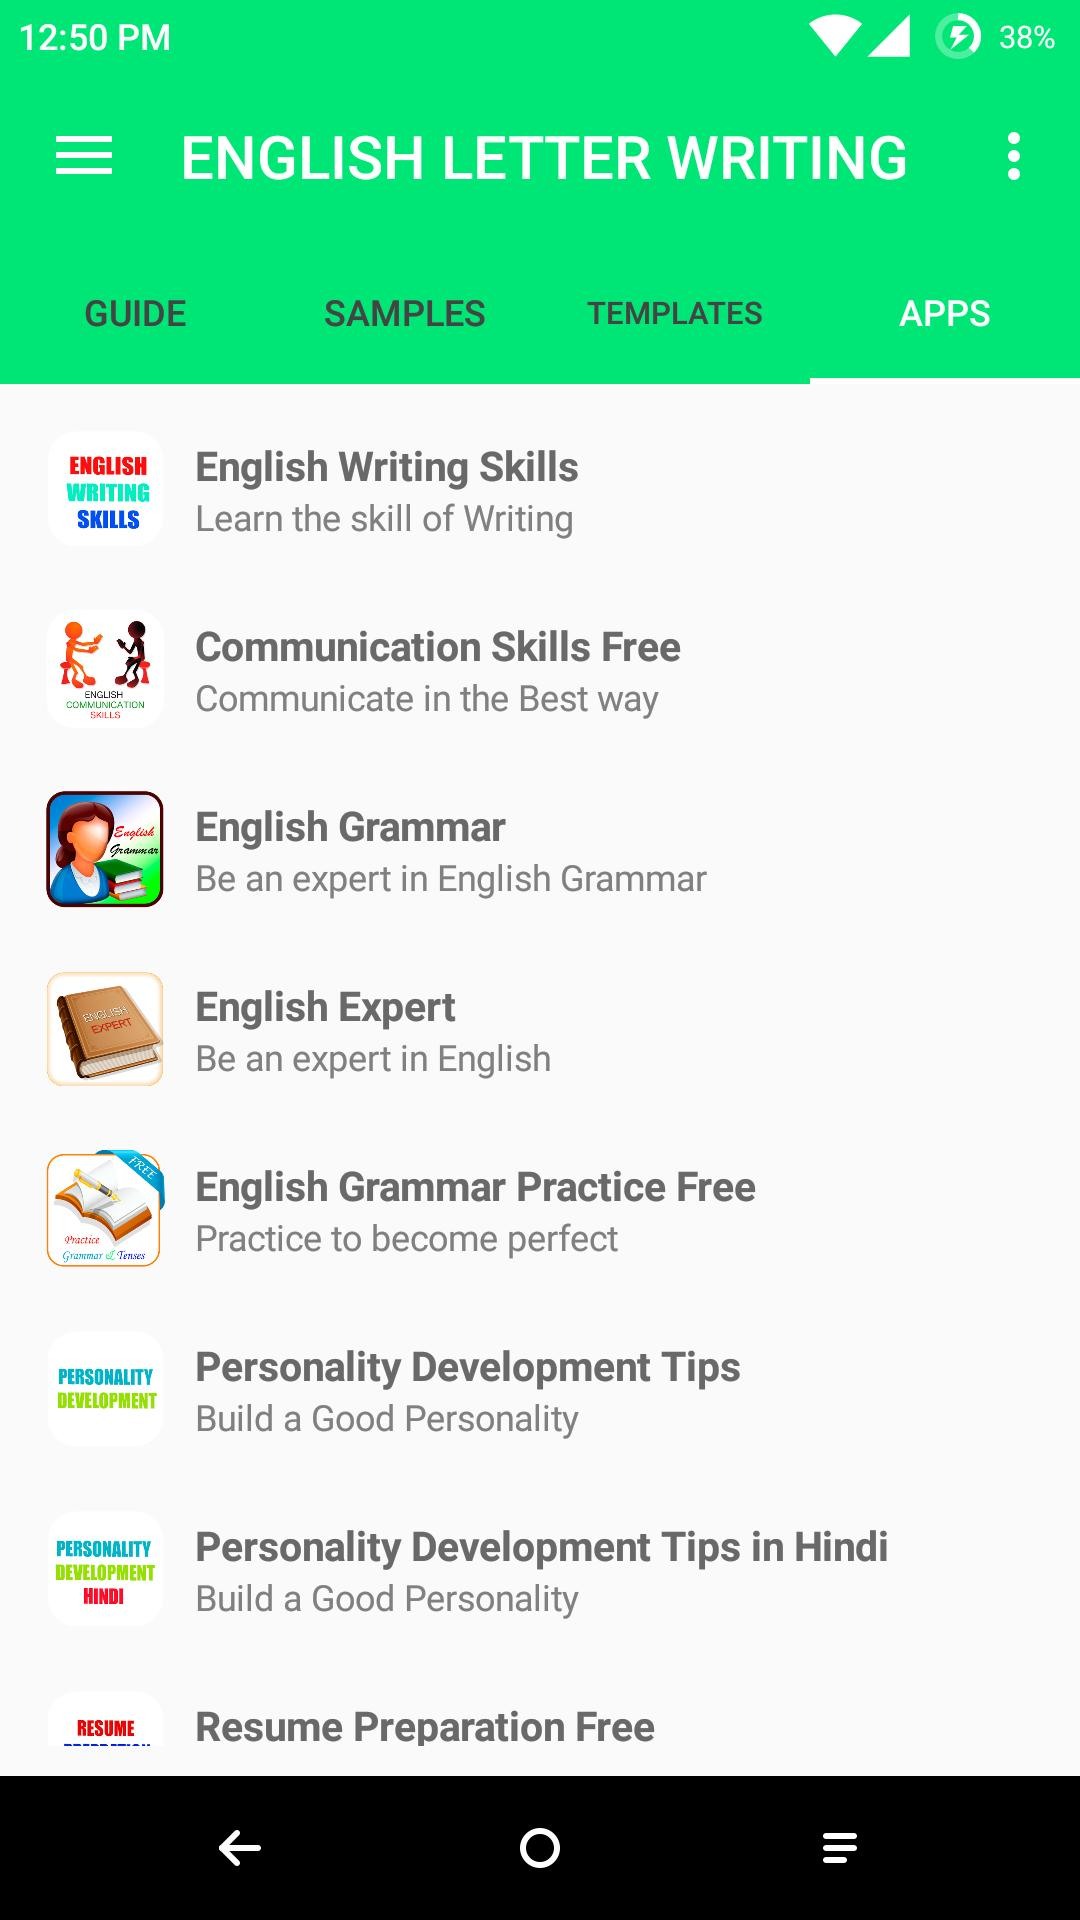 English Letter Writing for Android - APK Download